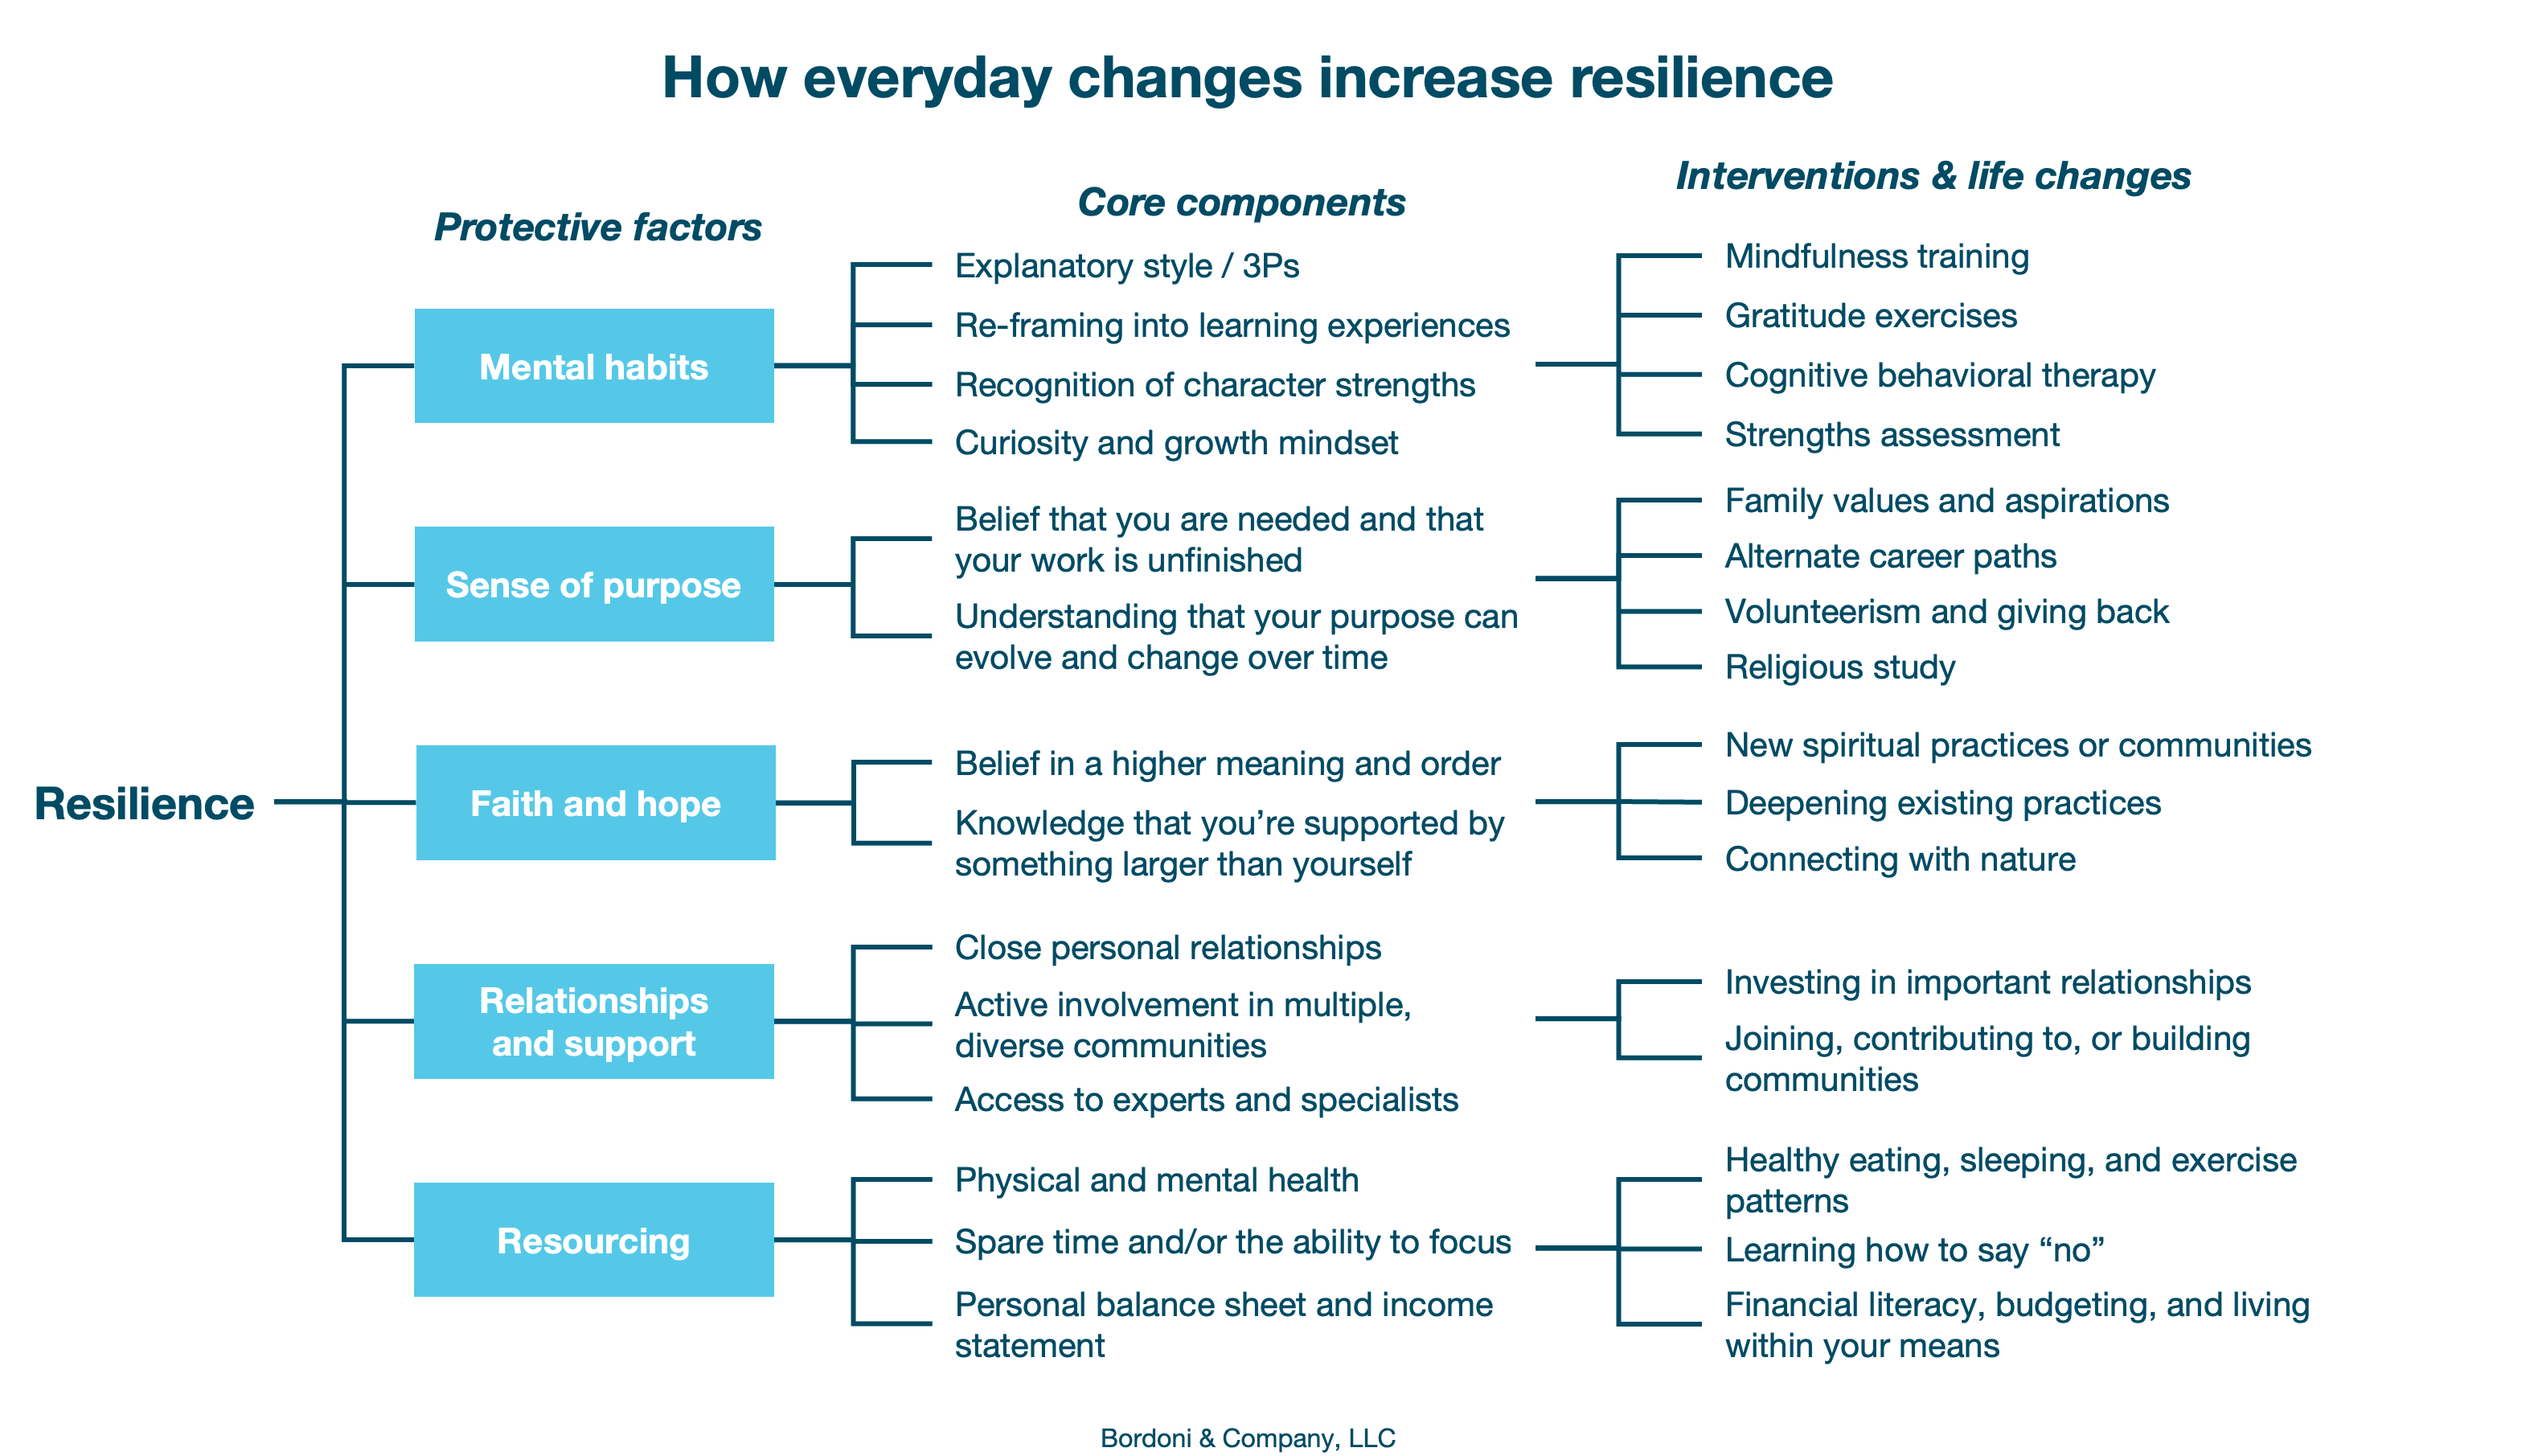 How everyday changes increase resilience | Bordoni & Company